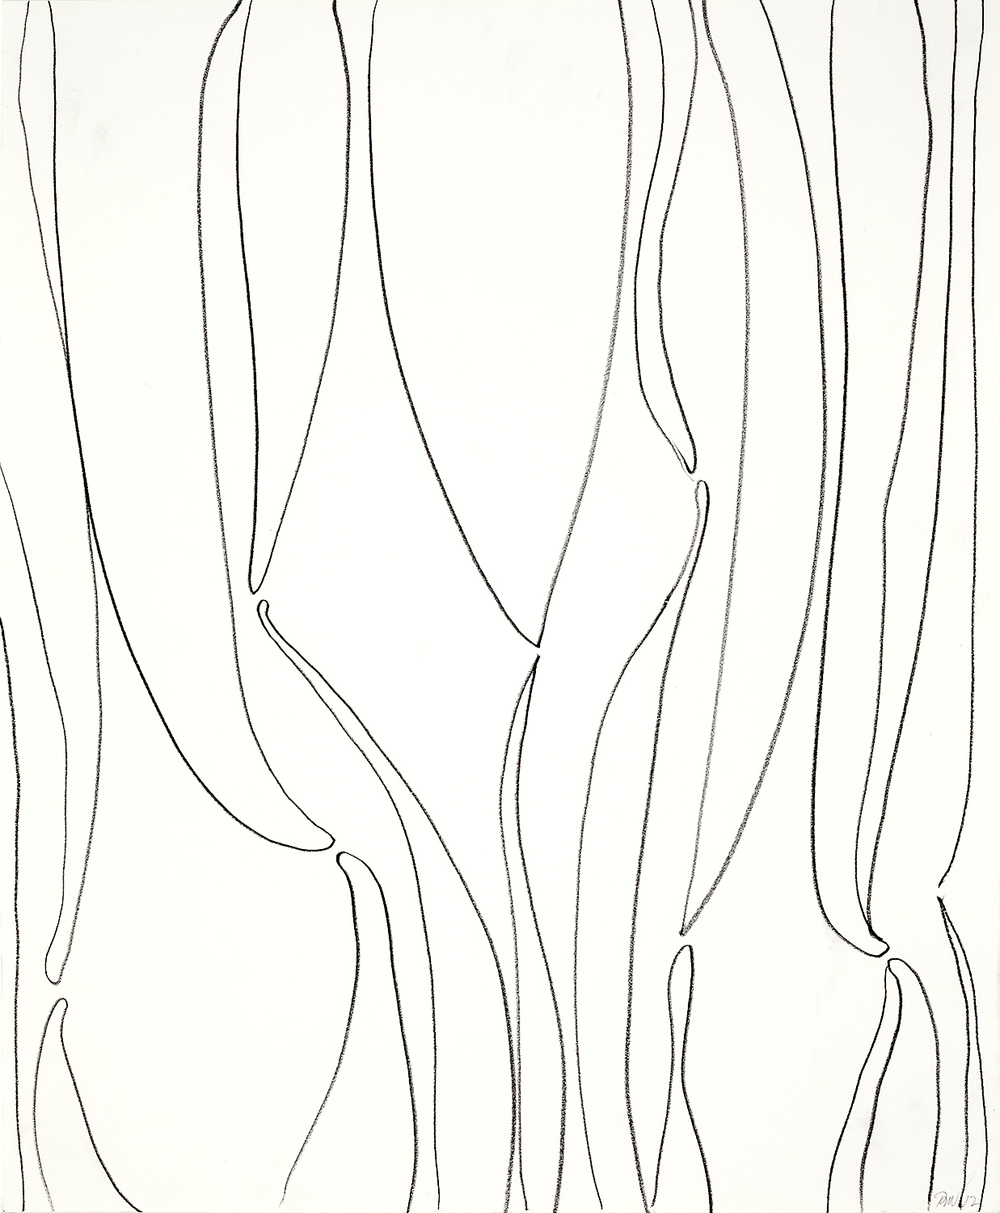 """Brian Wood <br> """"Meniscus"""" <br> Graphite on paper <br> 17 x 14 in."""